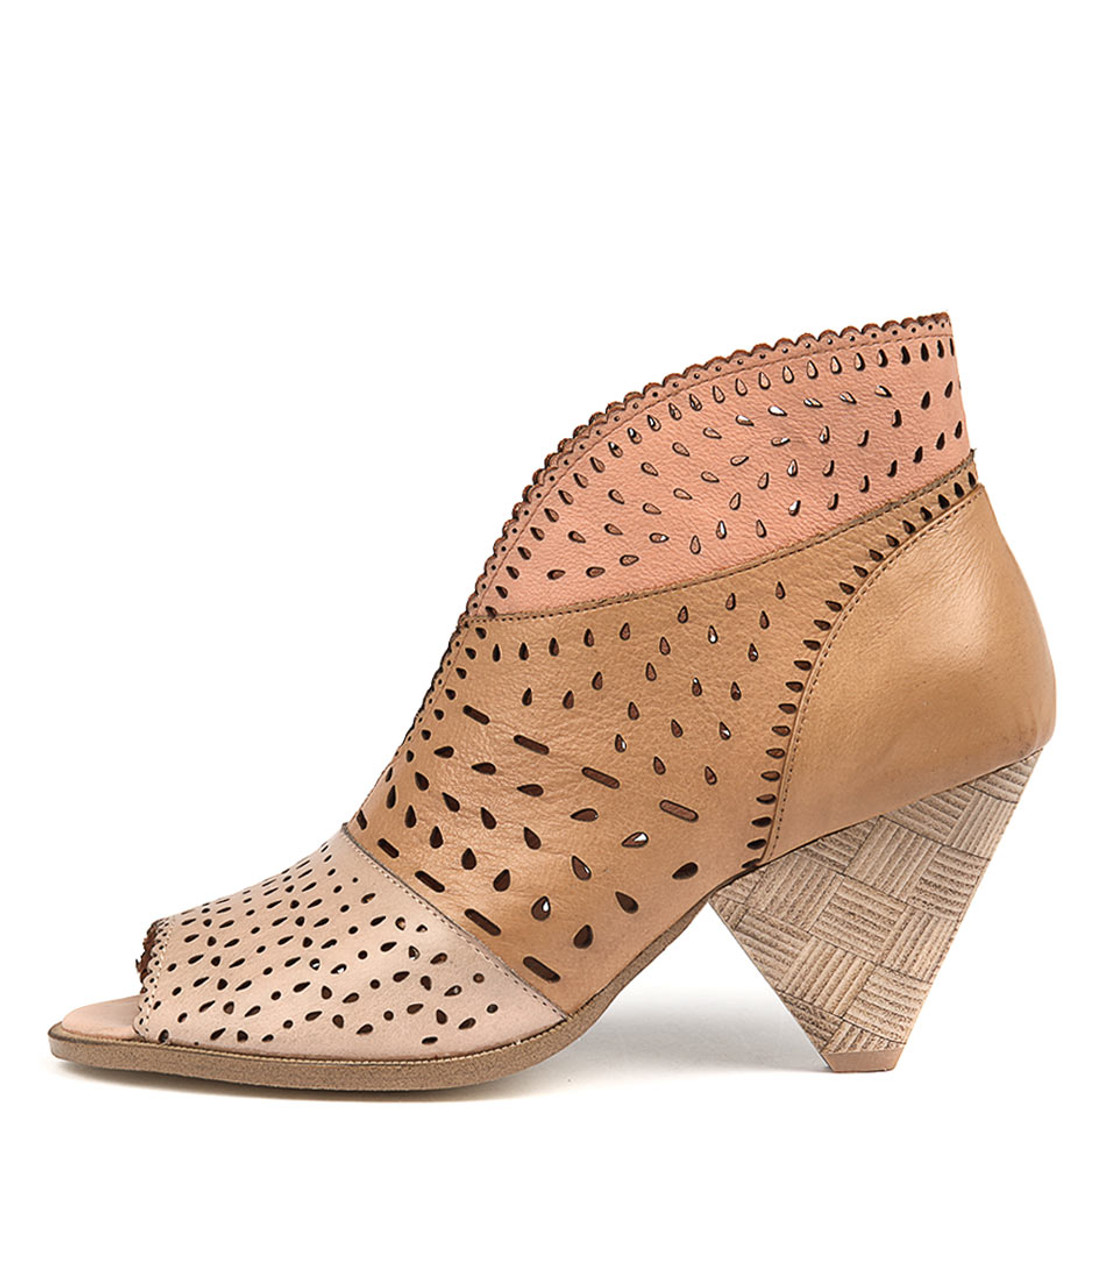 d651f1a98cd OSHI Heeled Sandals in Nude/ Tan/ Blush Leather - Django and Juliette